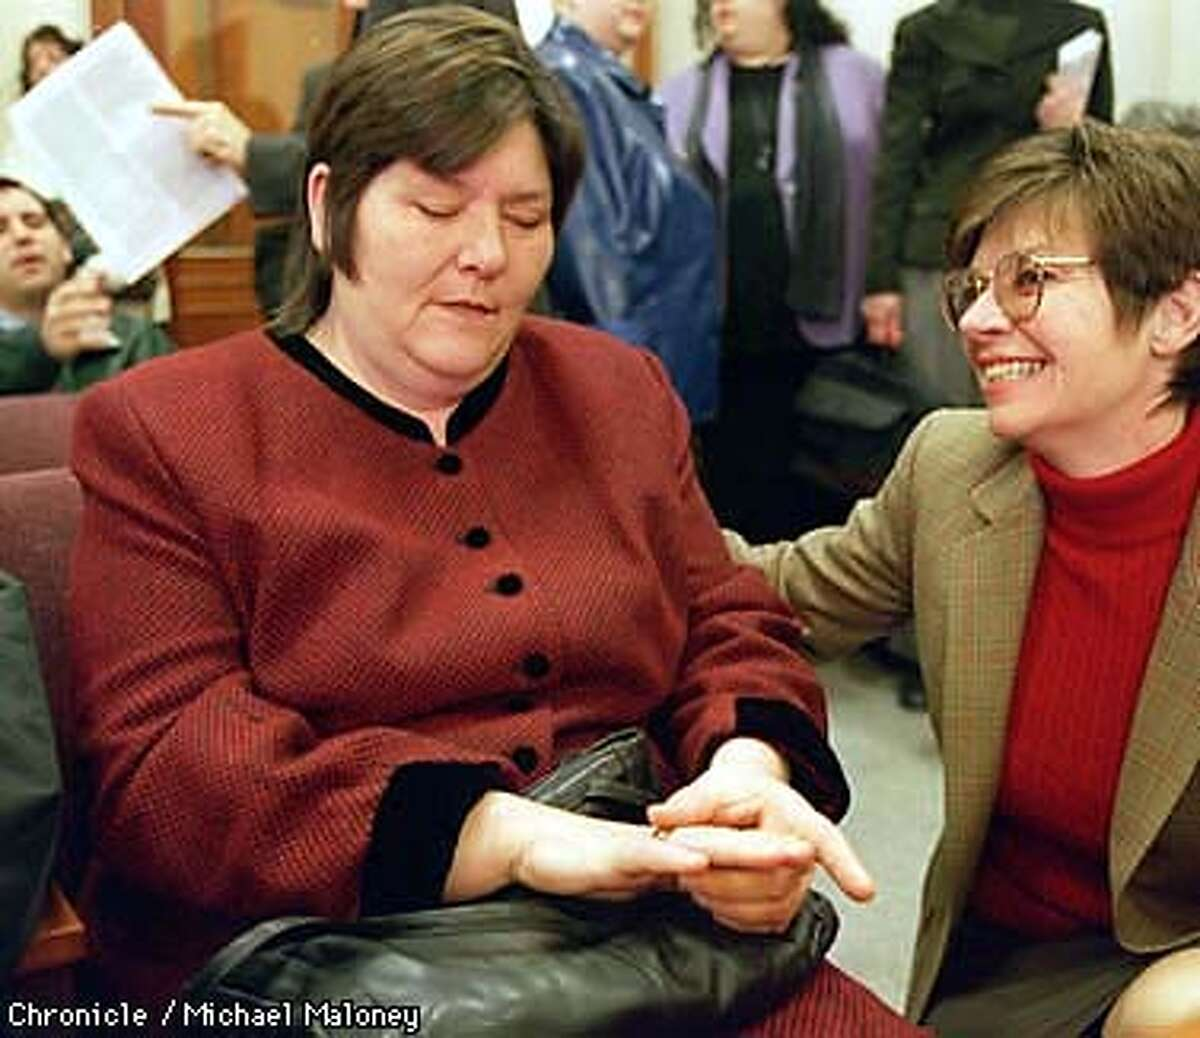 Attorney Laurie Saunders (right) tries to cheer up a pensive Marlene Corrigan just prior to Corrigan's sentencing in Contra Costa County Superior Court in Martinez. Corrigan was sentanced to community service for misdemeanor child abuse of her obese daughter who died last year. Saunders is one of her attorneys along with Michael Cardoza. Photo by Michael Maloney